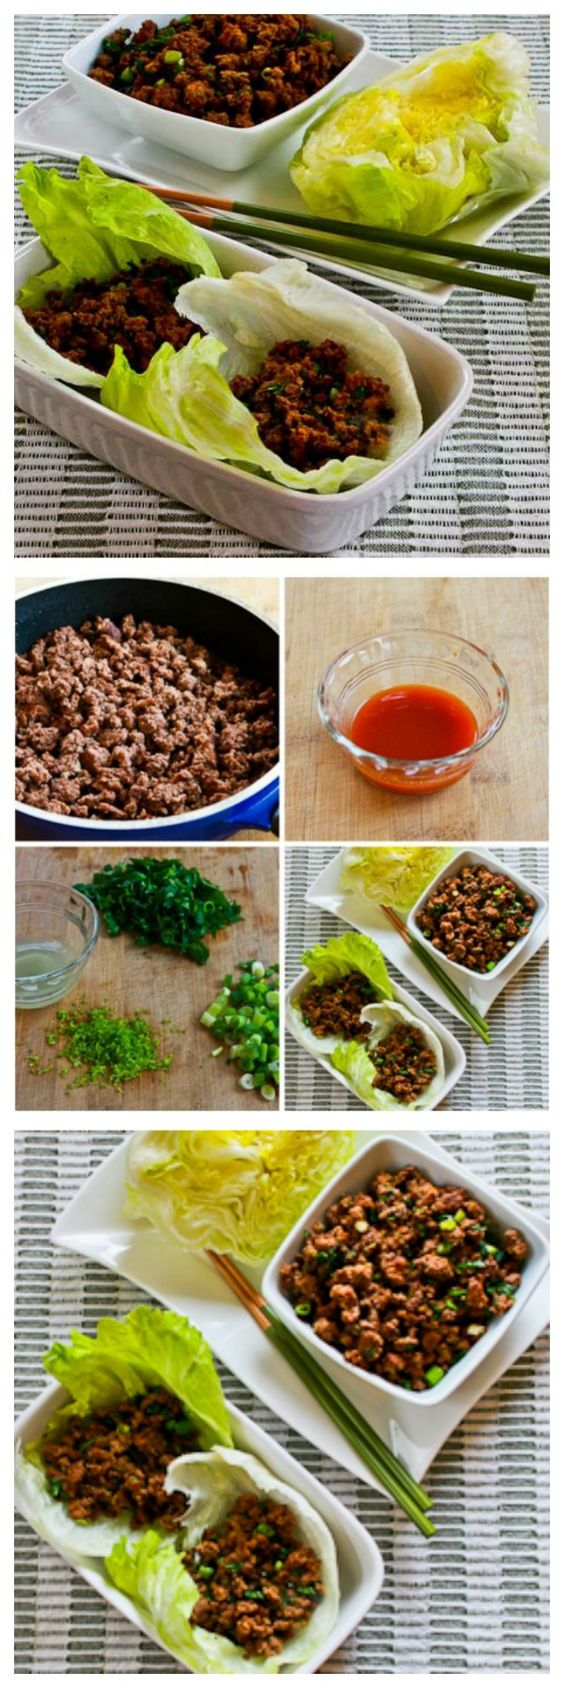 Quick Sriracha Beef Lettuce Wraps are a delicious low-carb and gluten-free meal that's just spicy enough to be interesting. I'd enjoy these for a quick meal any time of year. [found on KalynsKitchen.com] #DeliciouslyHealthyLowCarb